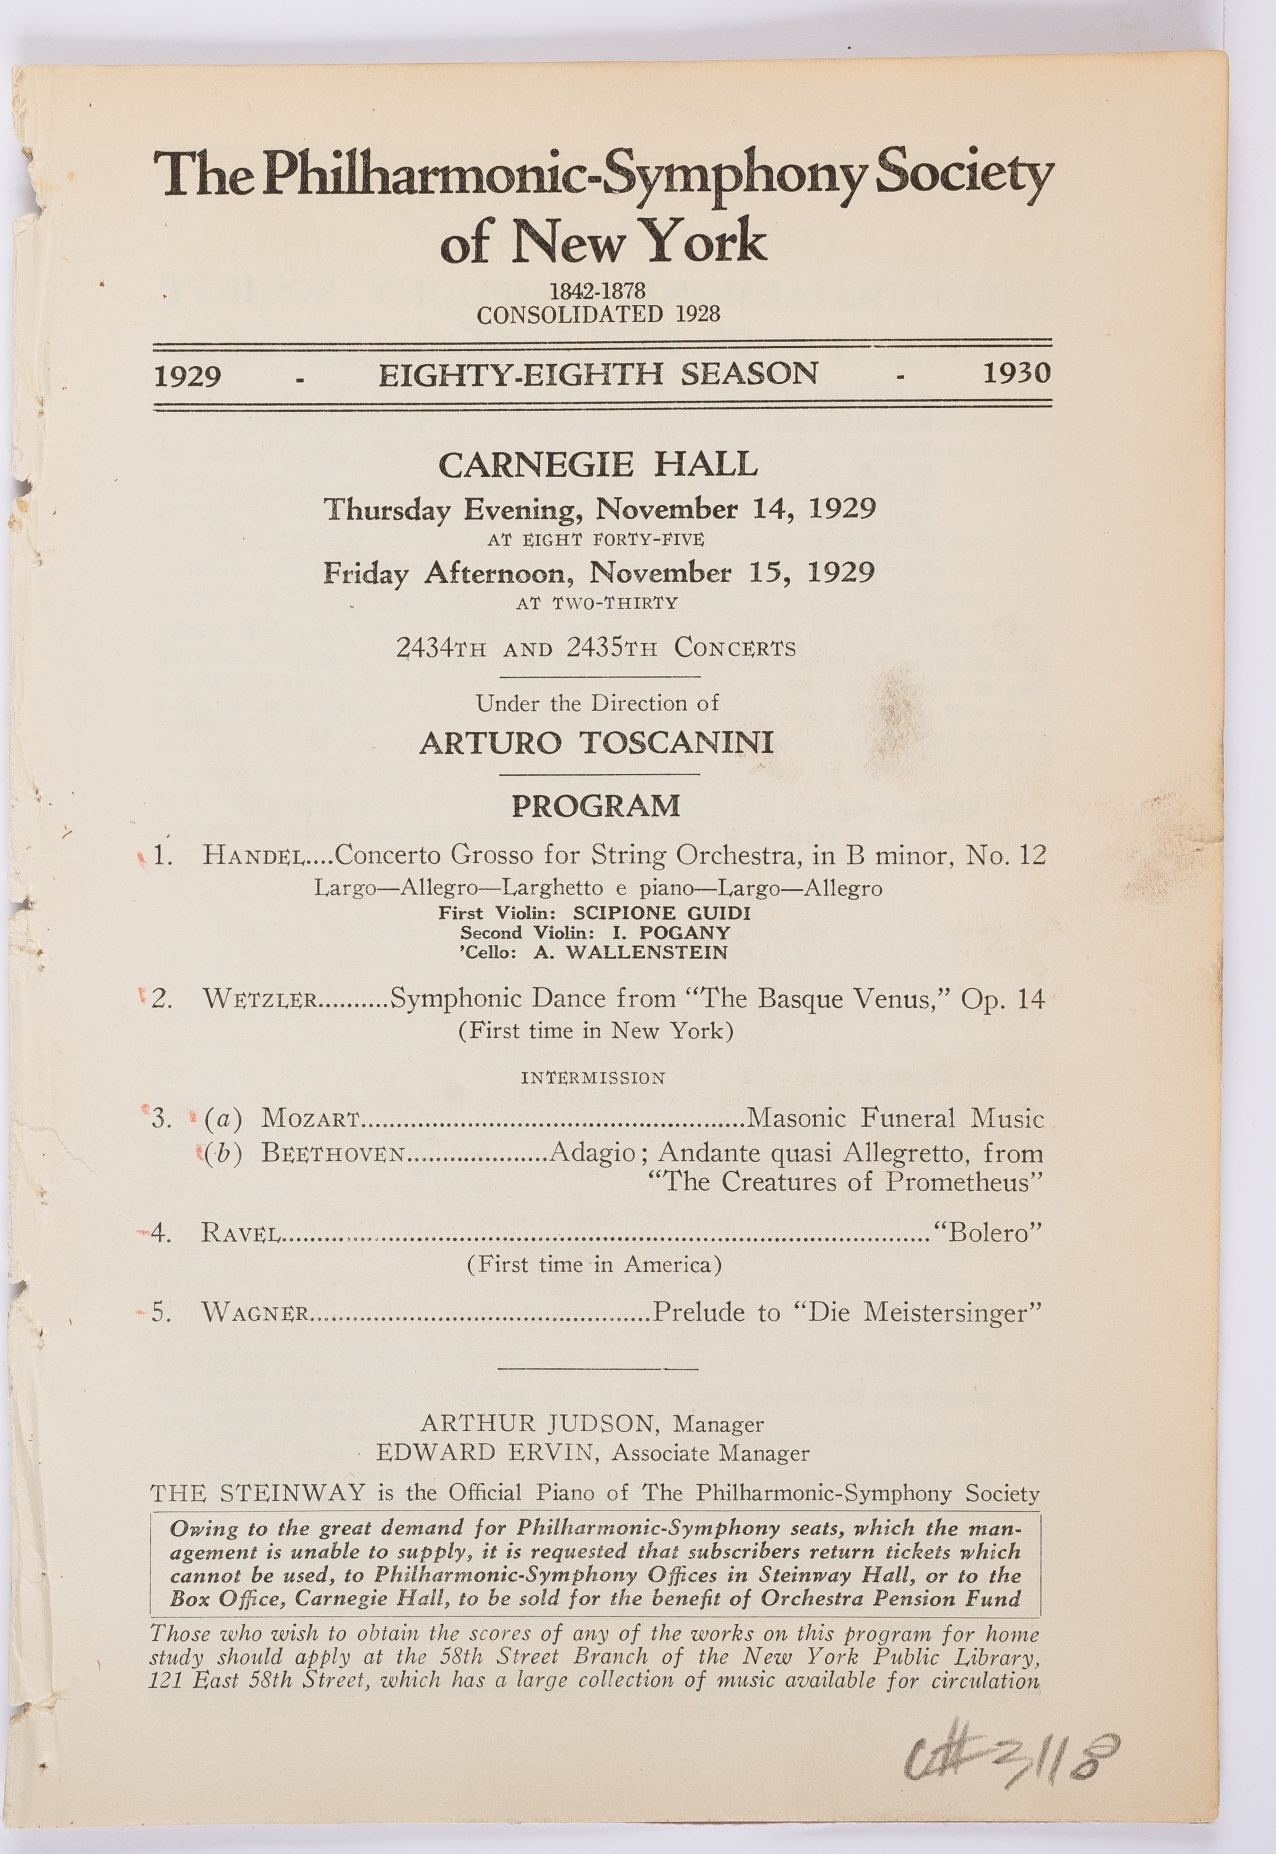 Concert program for the World Premiere of Boléro in concert-version by the Philharmonic and Toscanini, November 14, 1929.